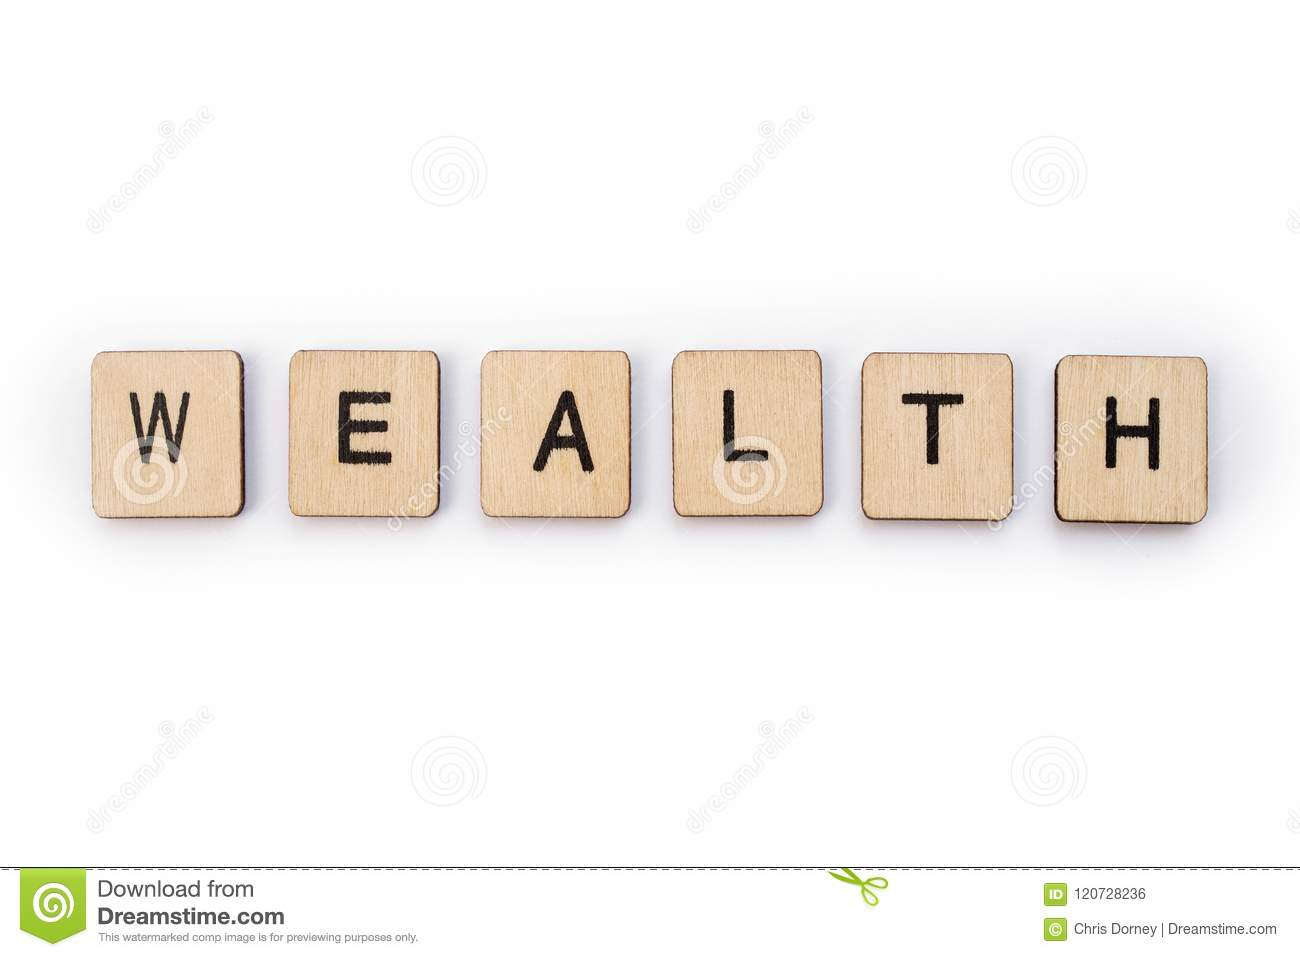 The word WEALTH